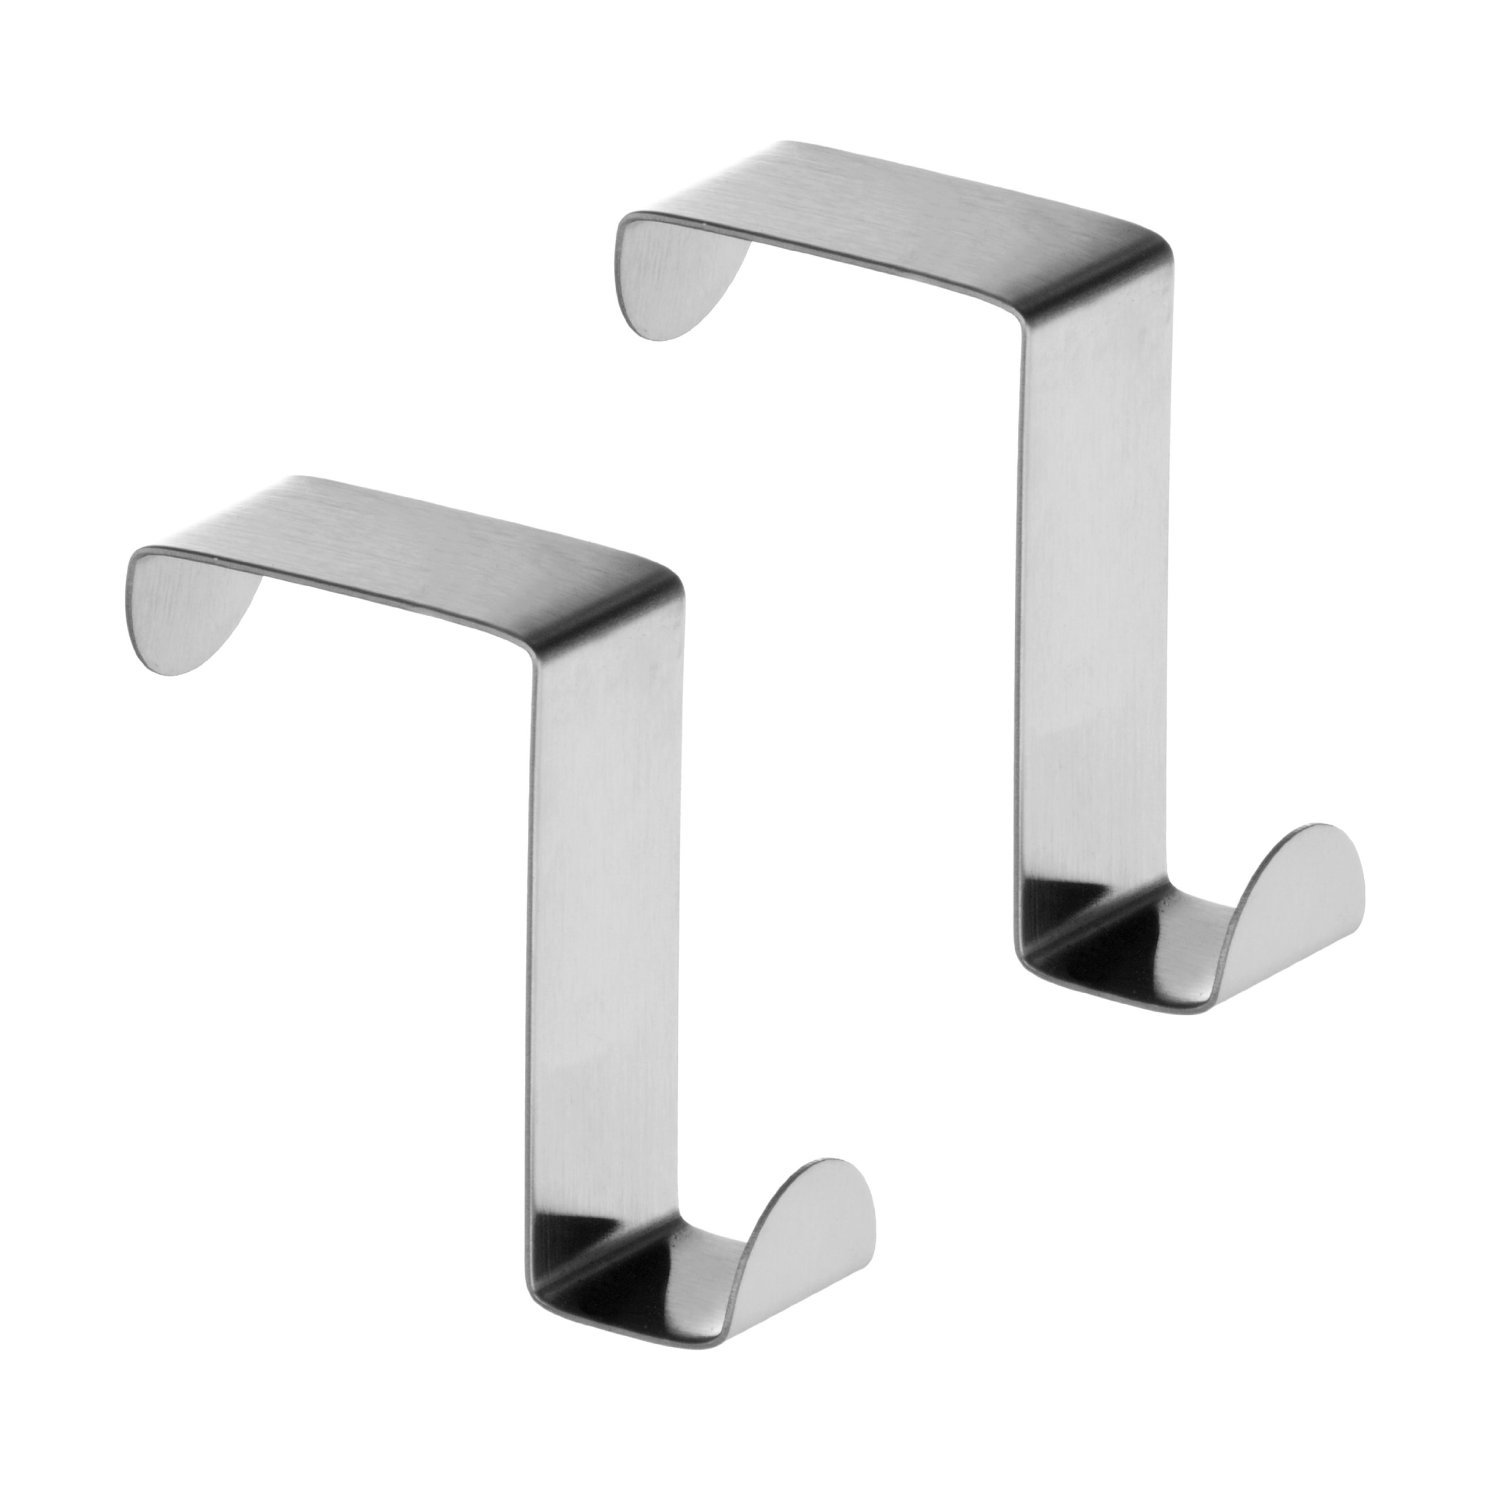 Bluelans® Stainless Steel Over Cupboard and Drawer Hooks - Set of 2